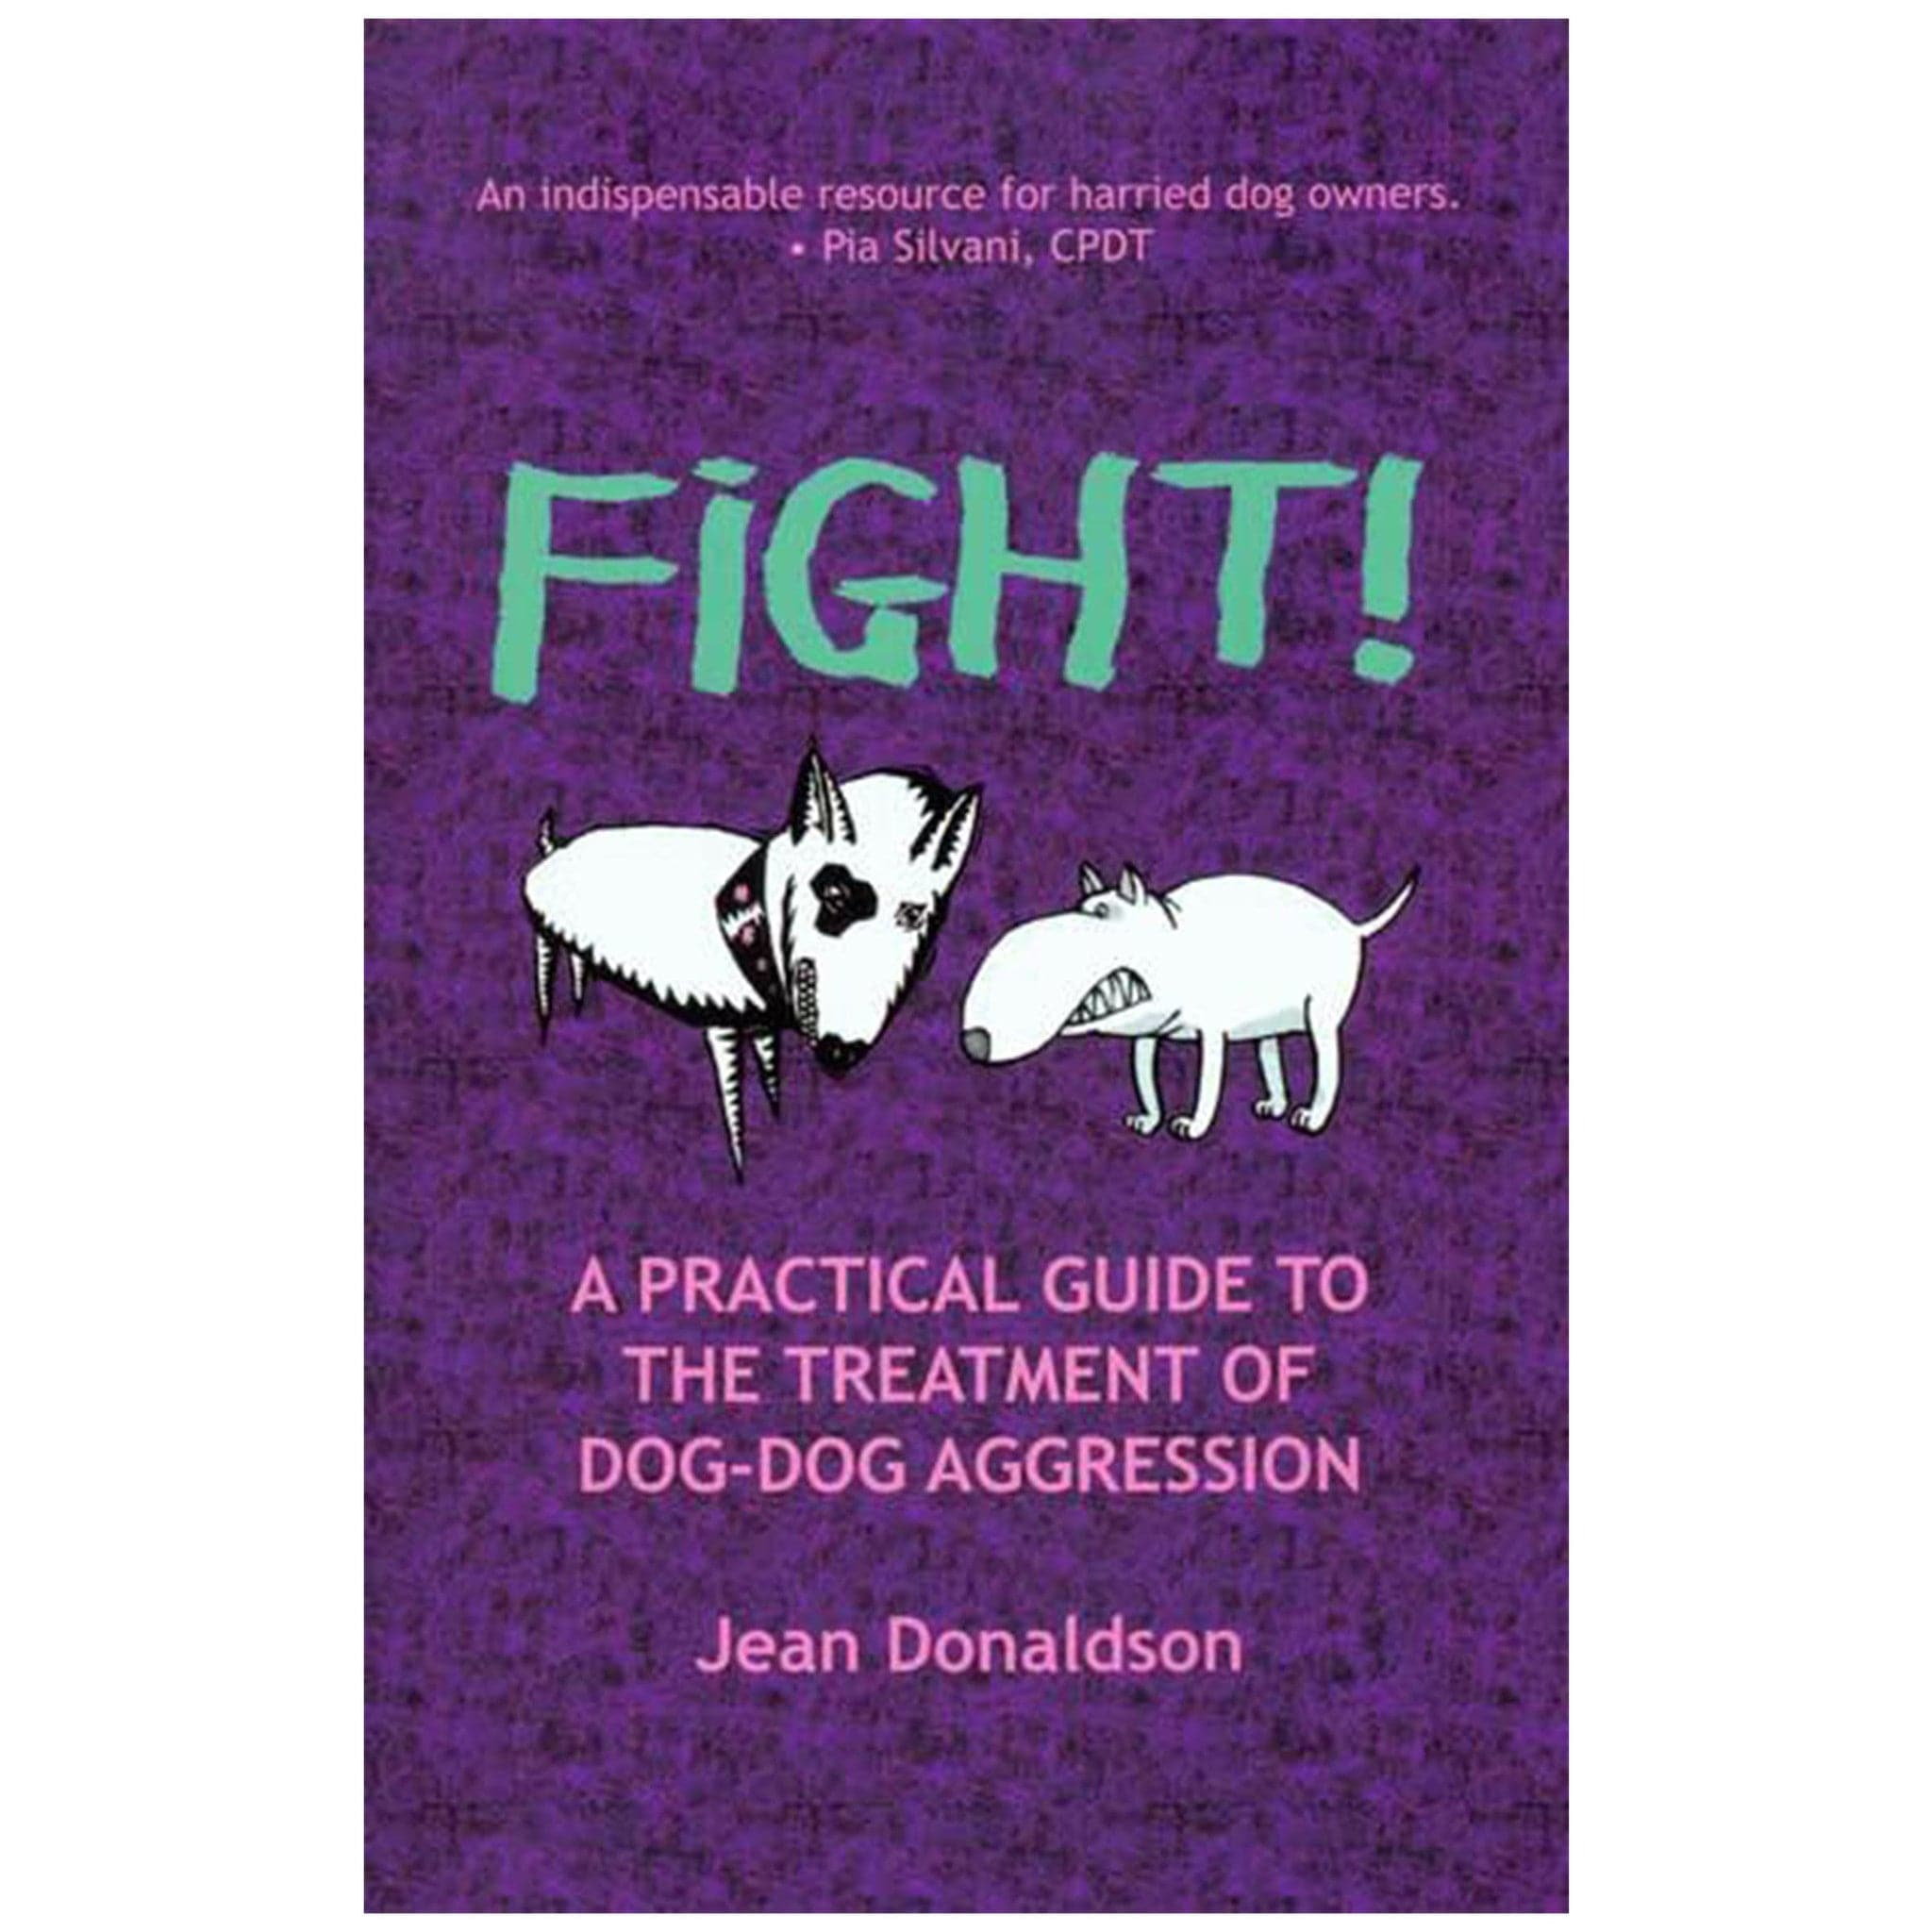 Fight! A Practical Guide to the Treatment of Dog-Dog Aggression by Jean Donaldson